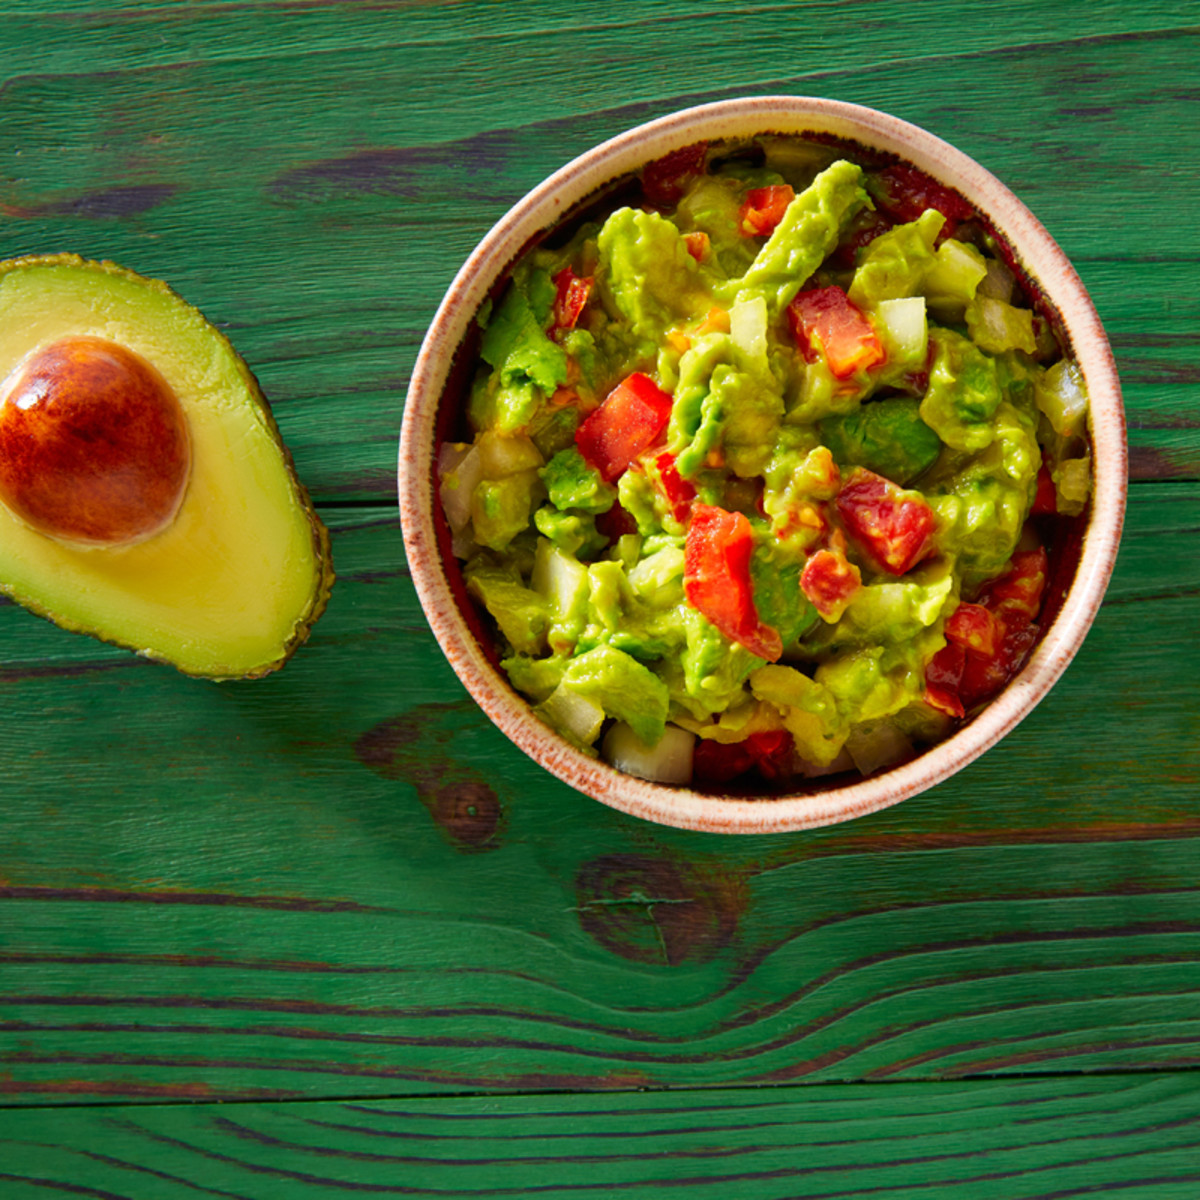 avocado-is-not-a-vegetable